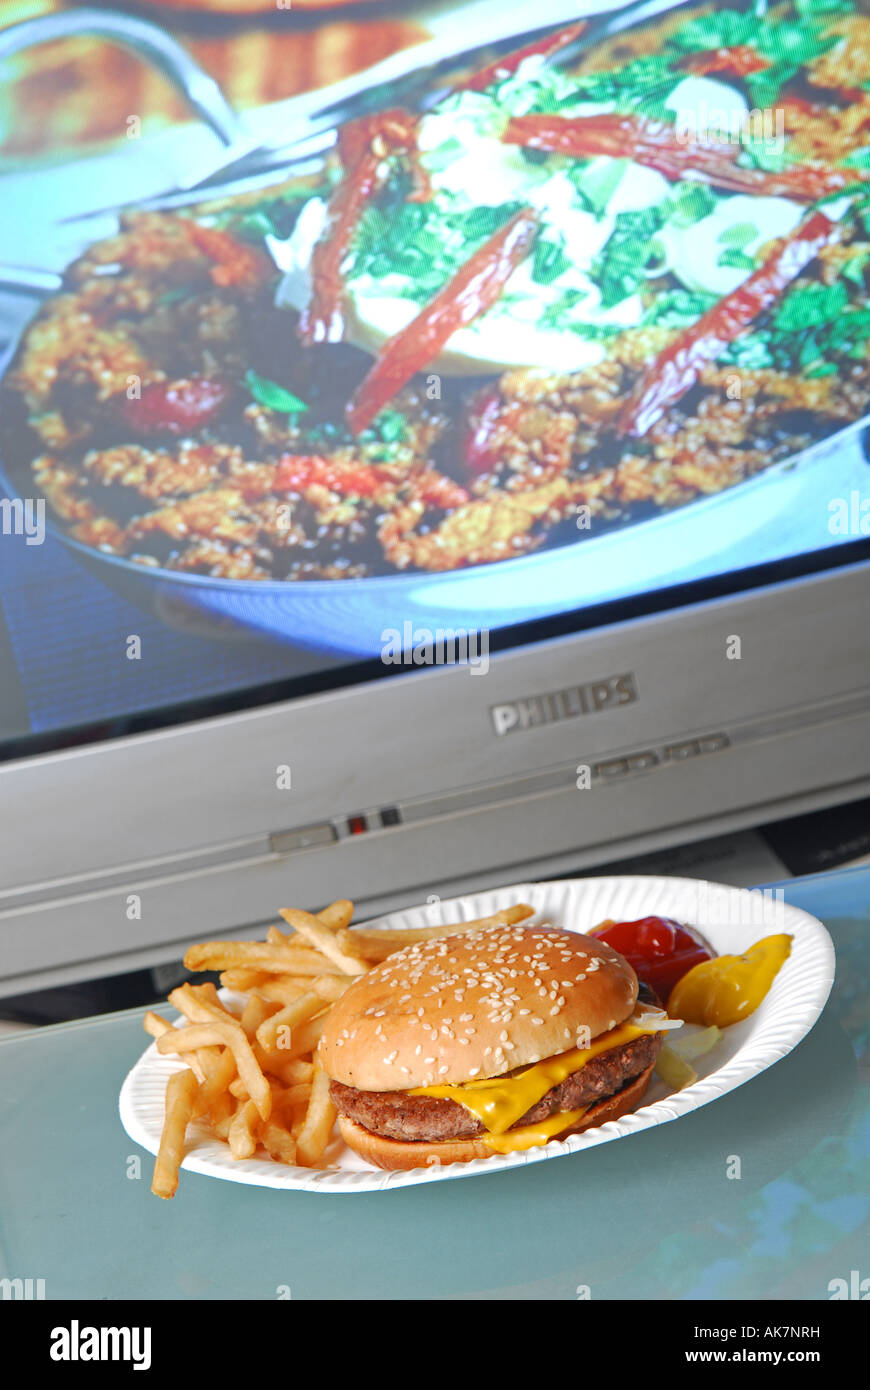 Concept shot to show unhealthy fast food TV dinner in front of television cookery programme showing healthy fresh - Stock Image